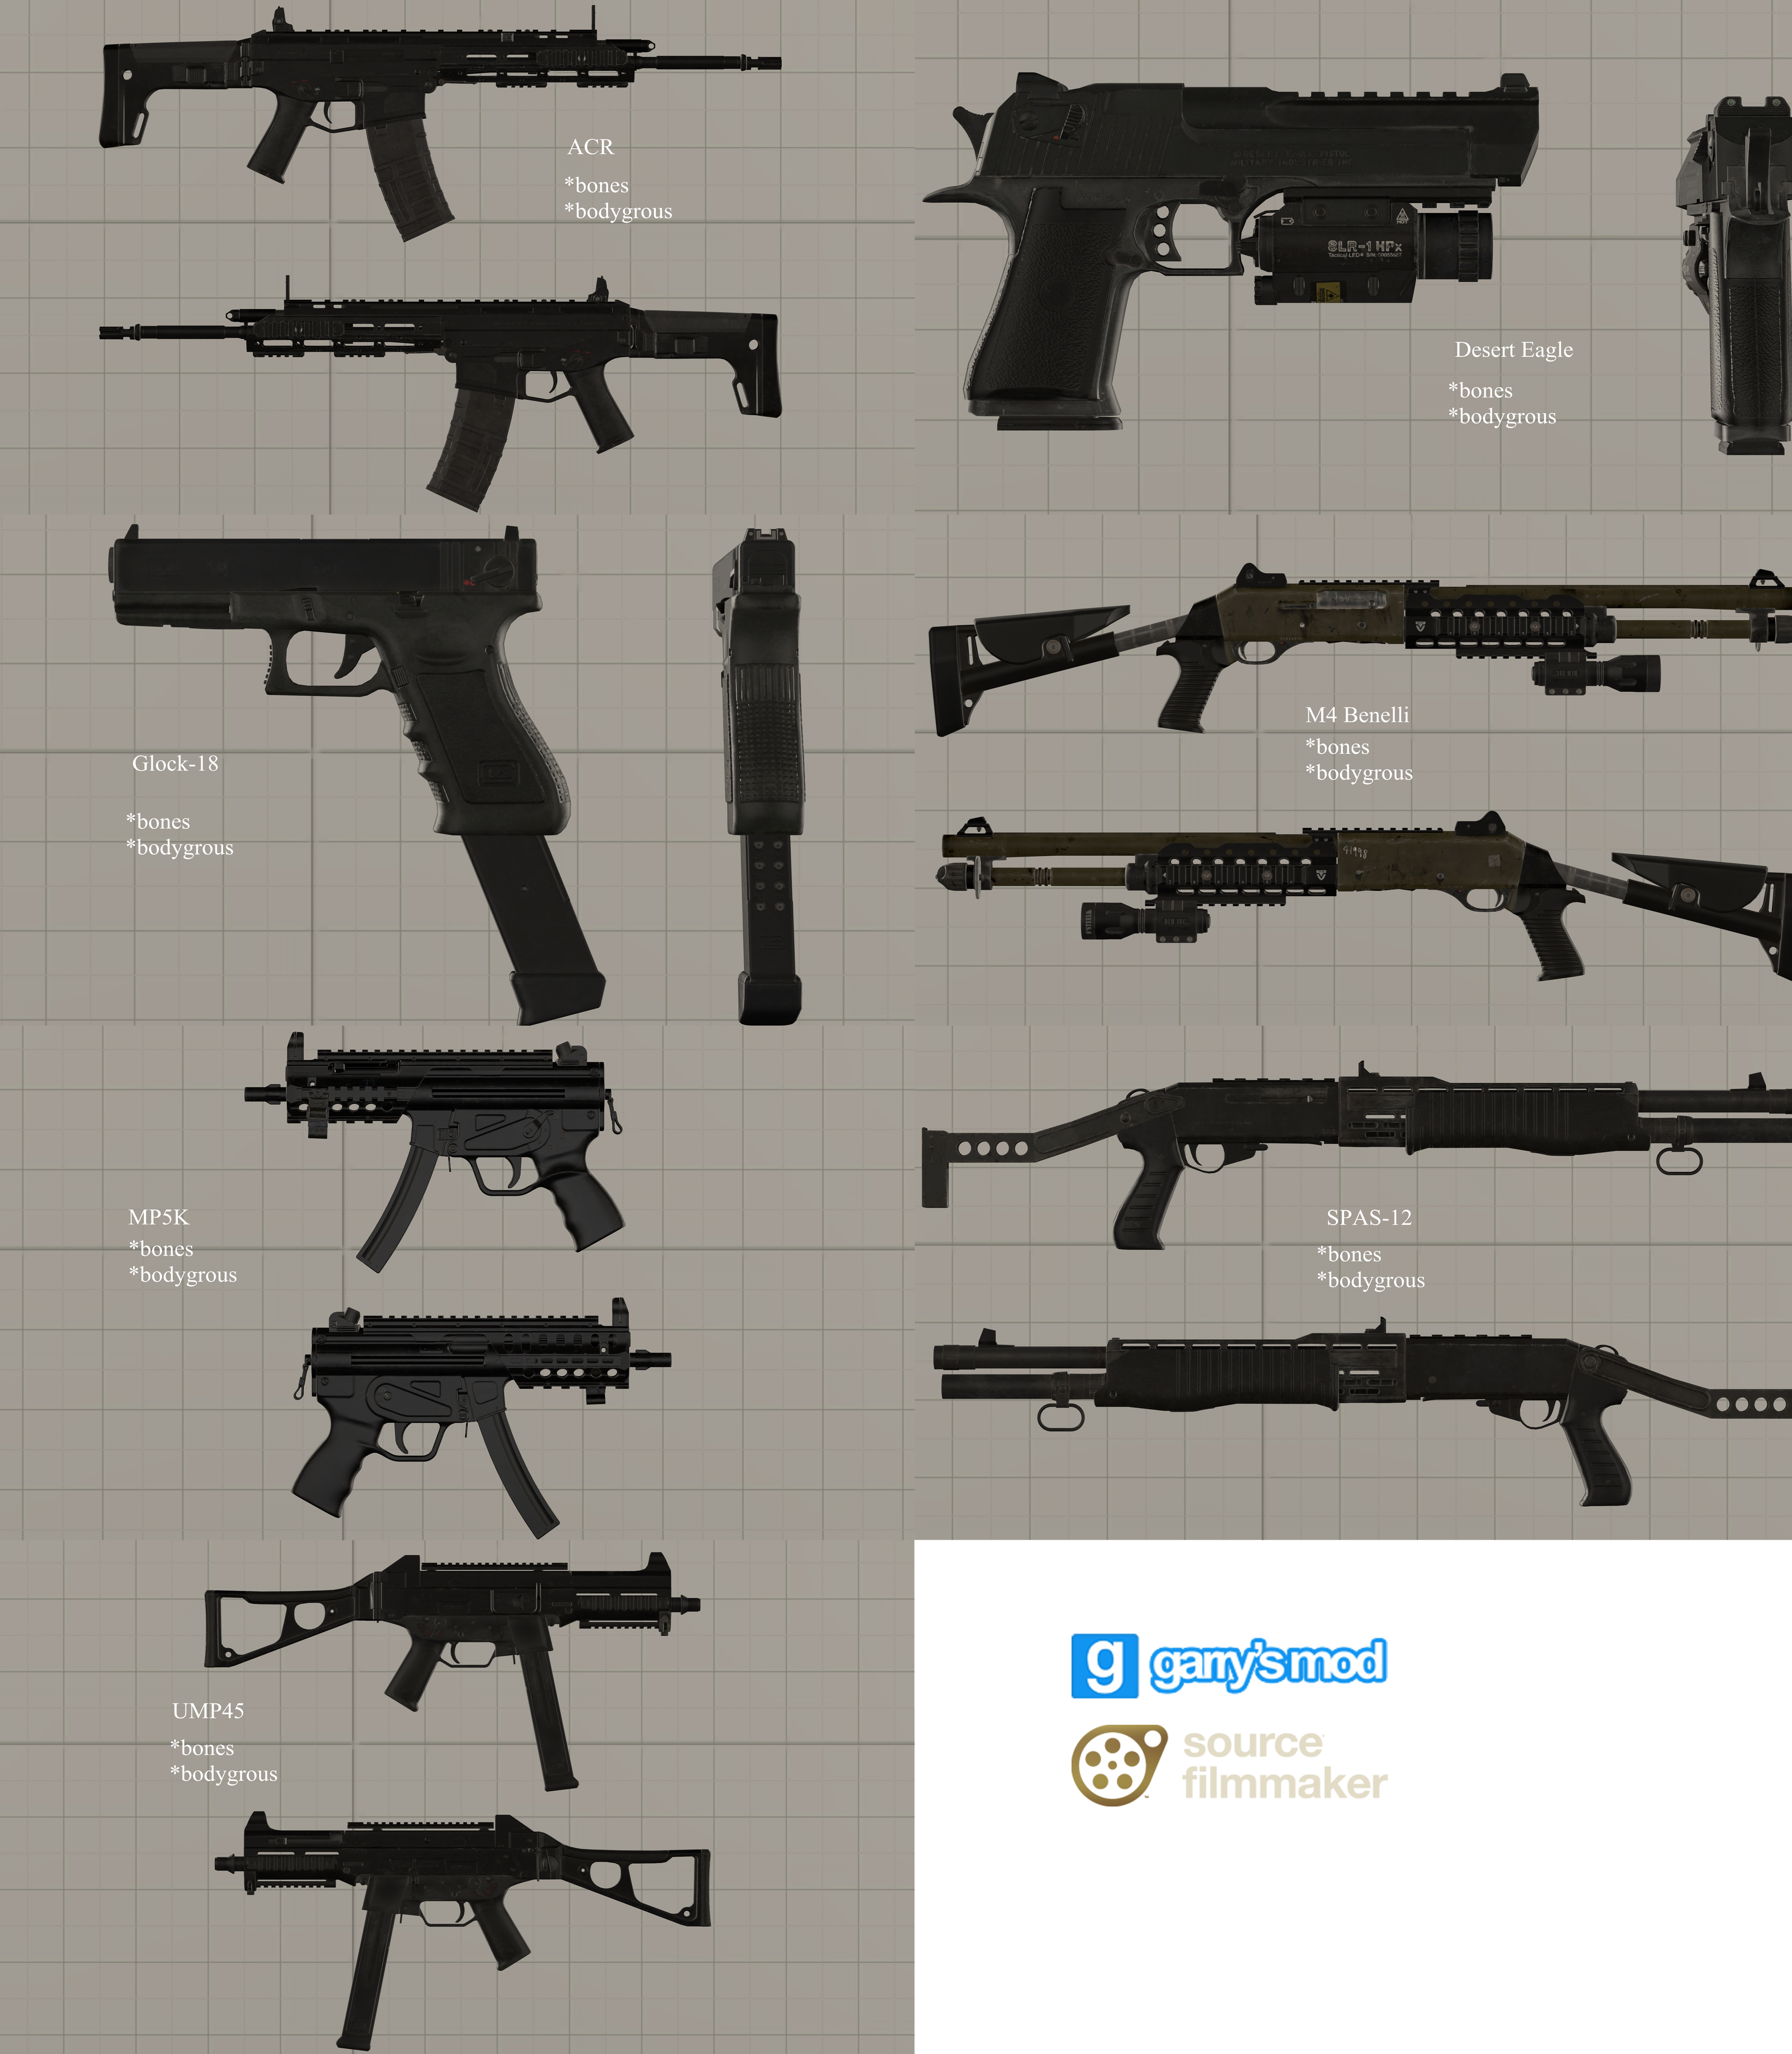 Dl Cod Mw2 Rm Small Weapons Pack 2 Props By Stefano96 On Deviantart